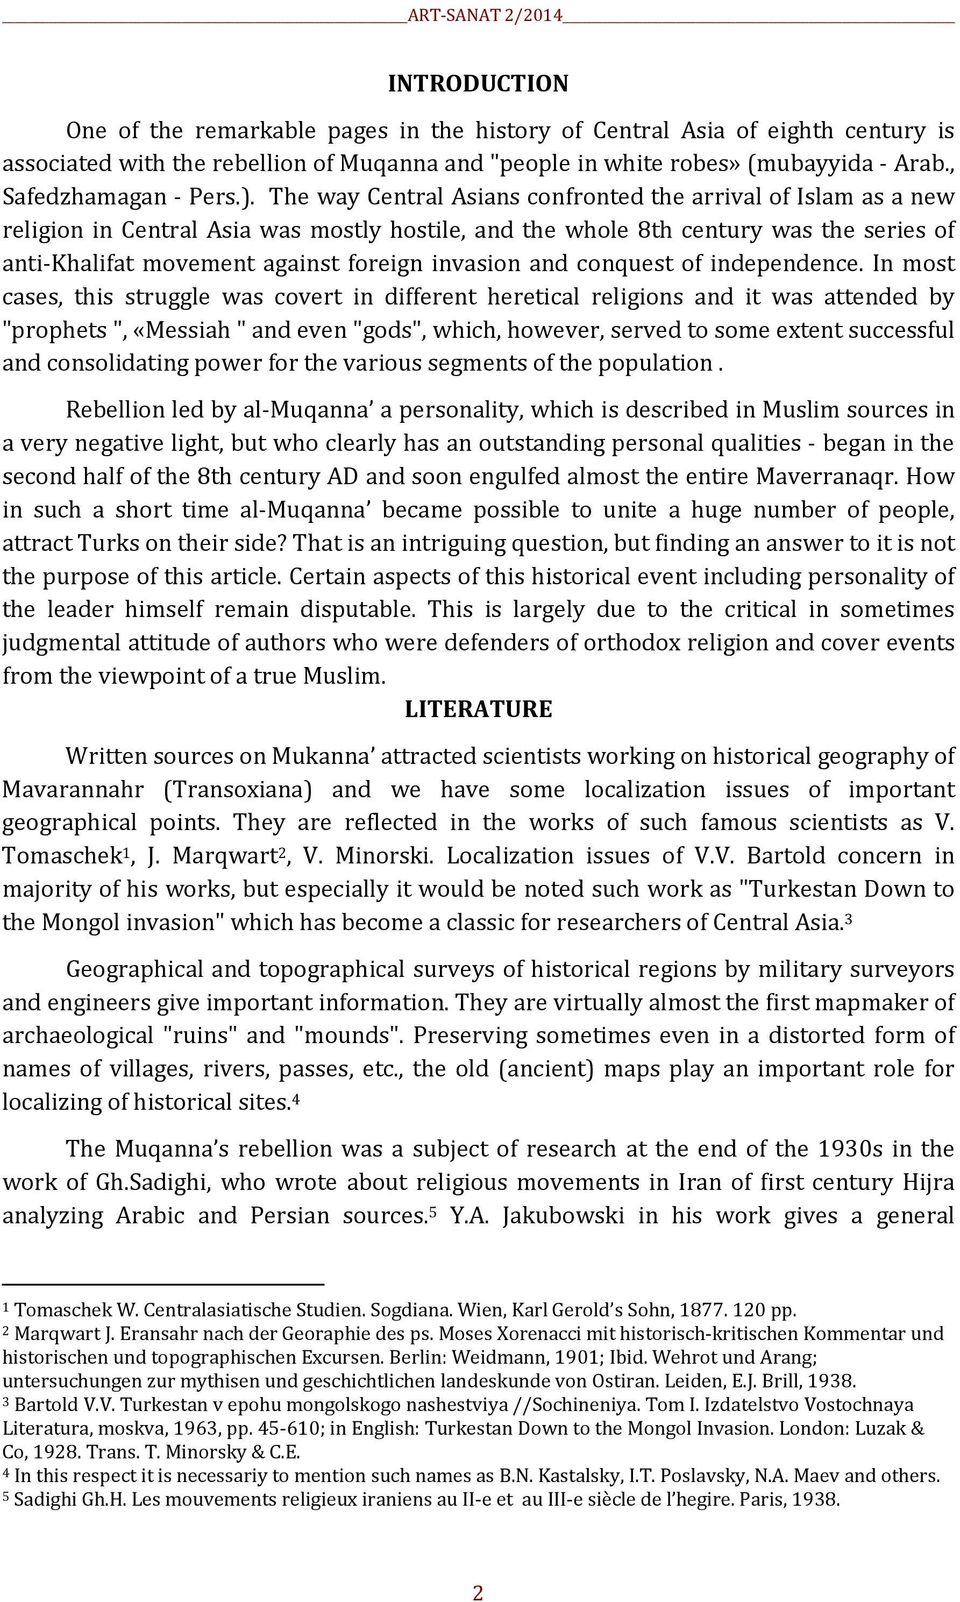 The way Central Asians confronted the arrival of Islam as a new religion in Central Asia was mostly hostile, and the whole 8th century was the series of anti-khalifat movement against foreign